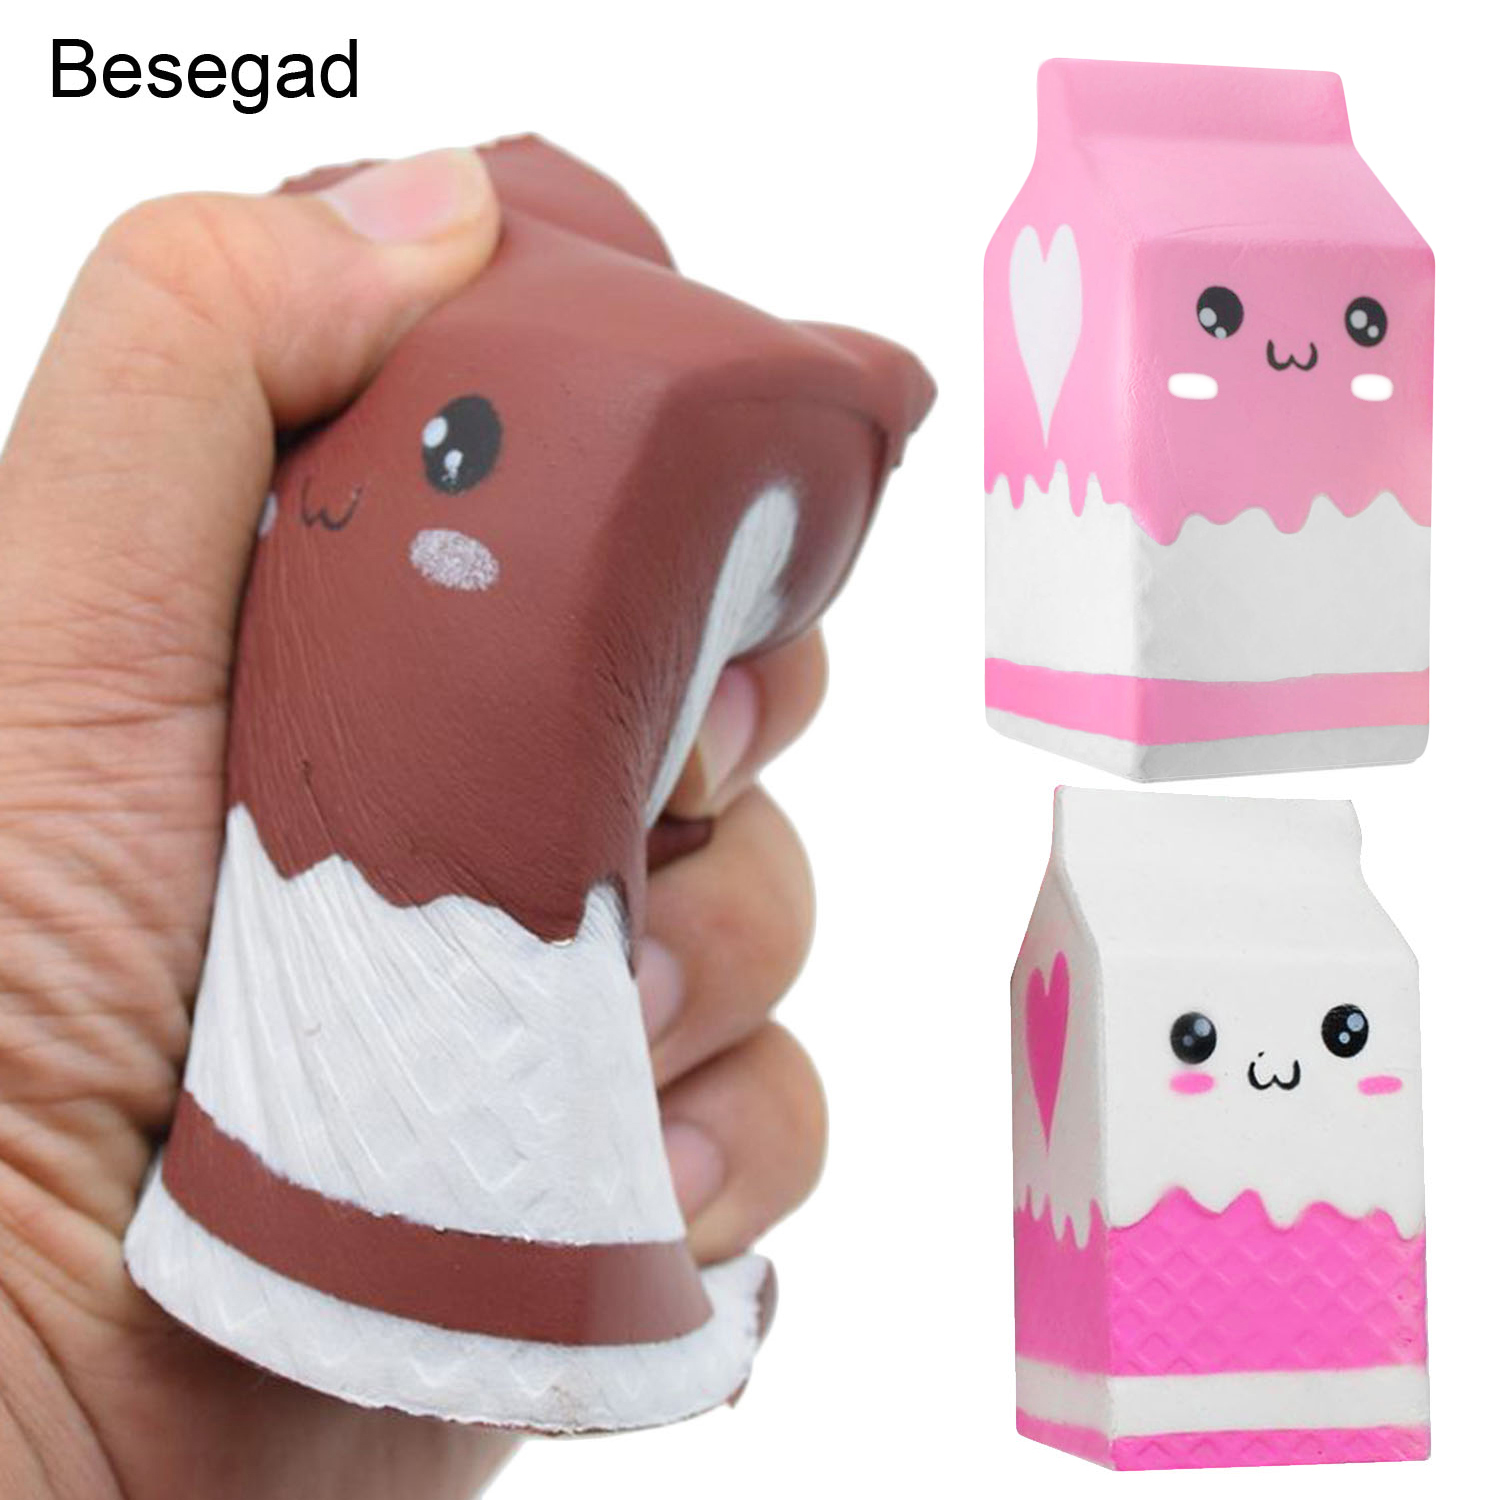 Besegad Kawaii Soft Squishy Charms Milk Bag Toy Slow Rising For Children Adults Relieves Stress Anxiety Cabinet Decor Sample